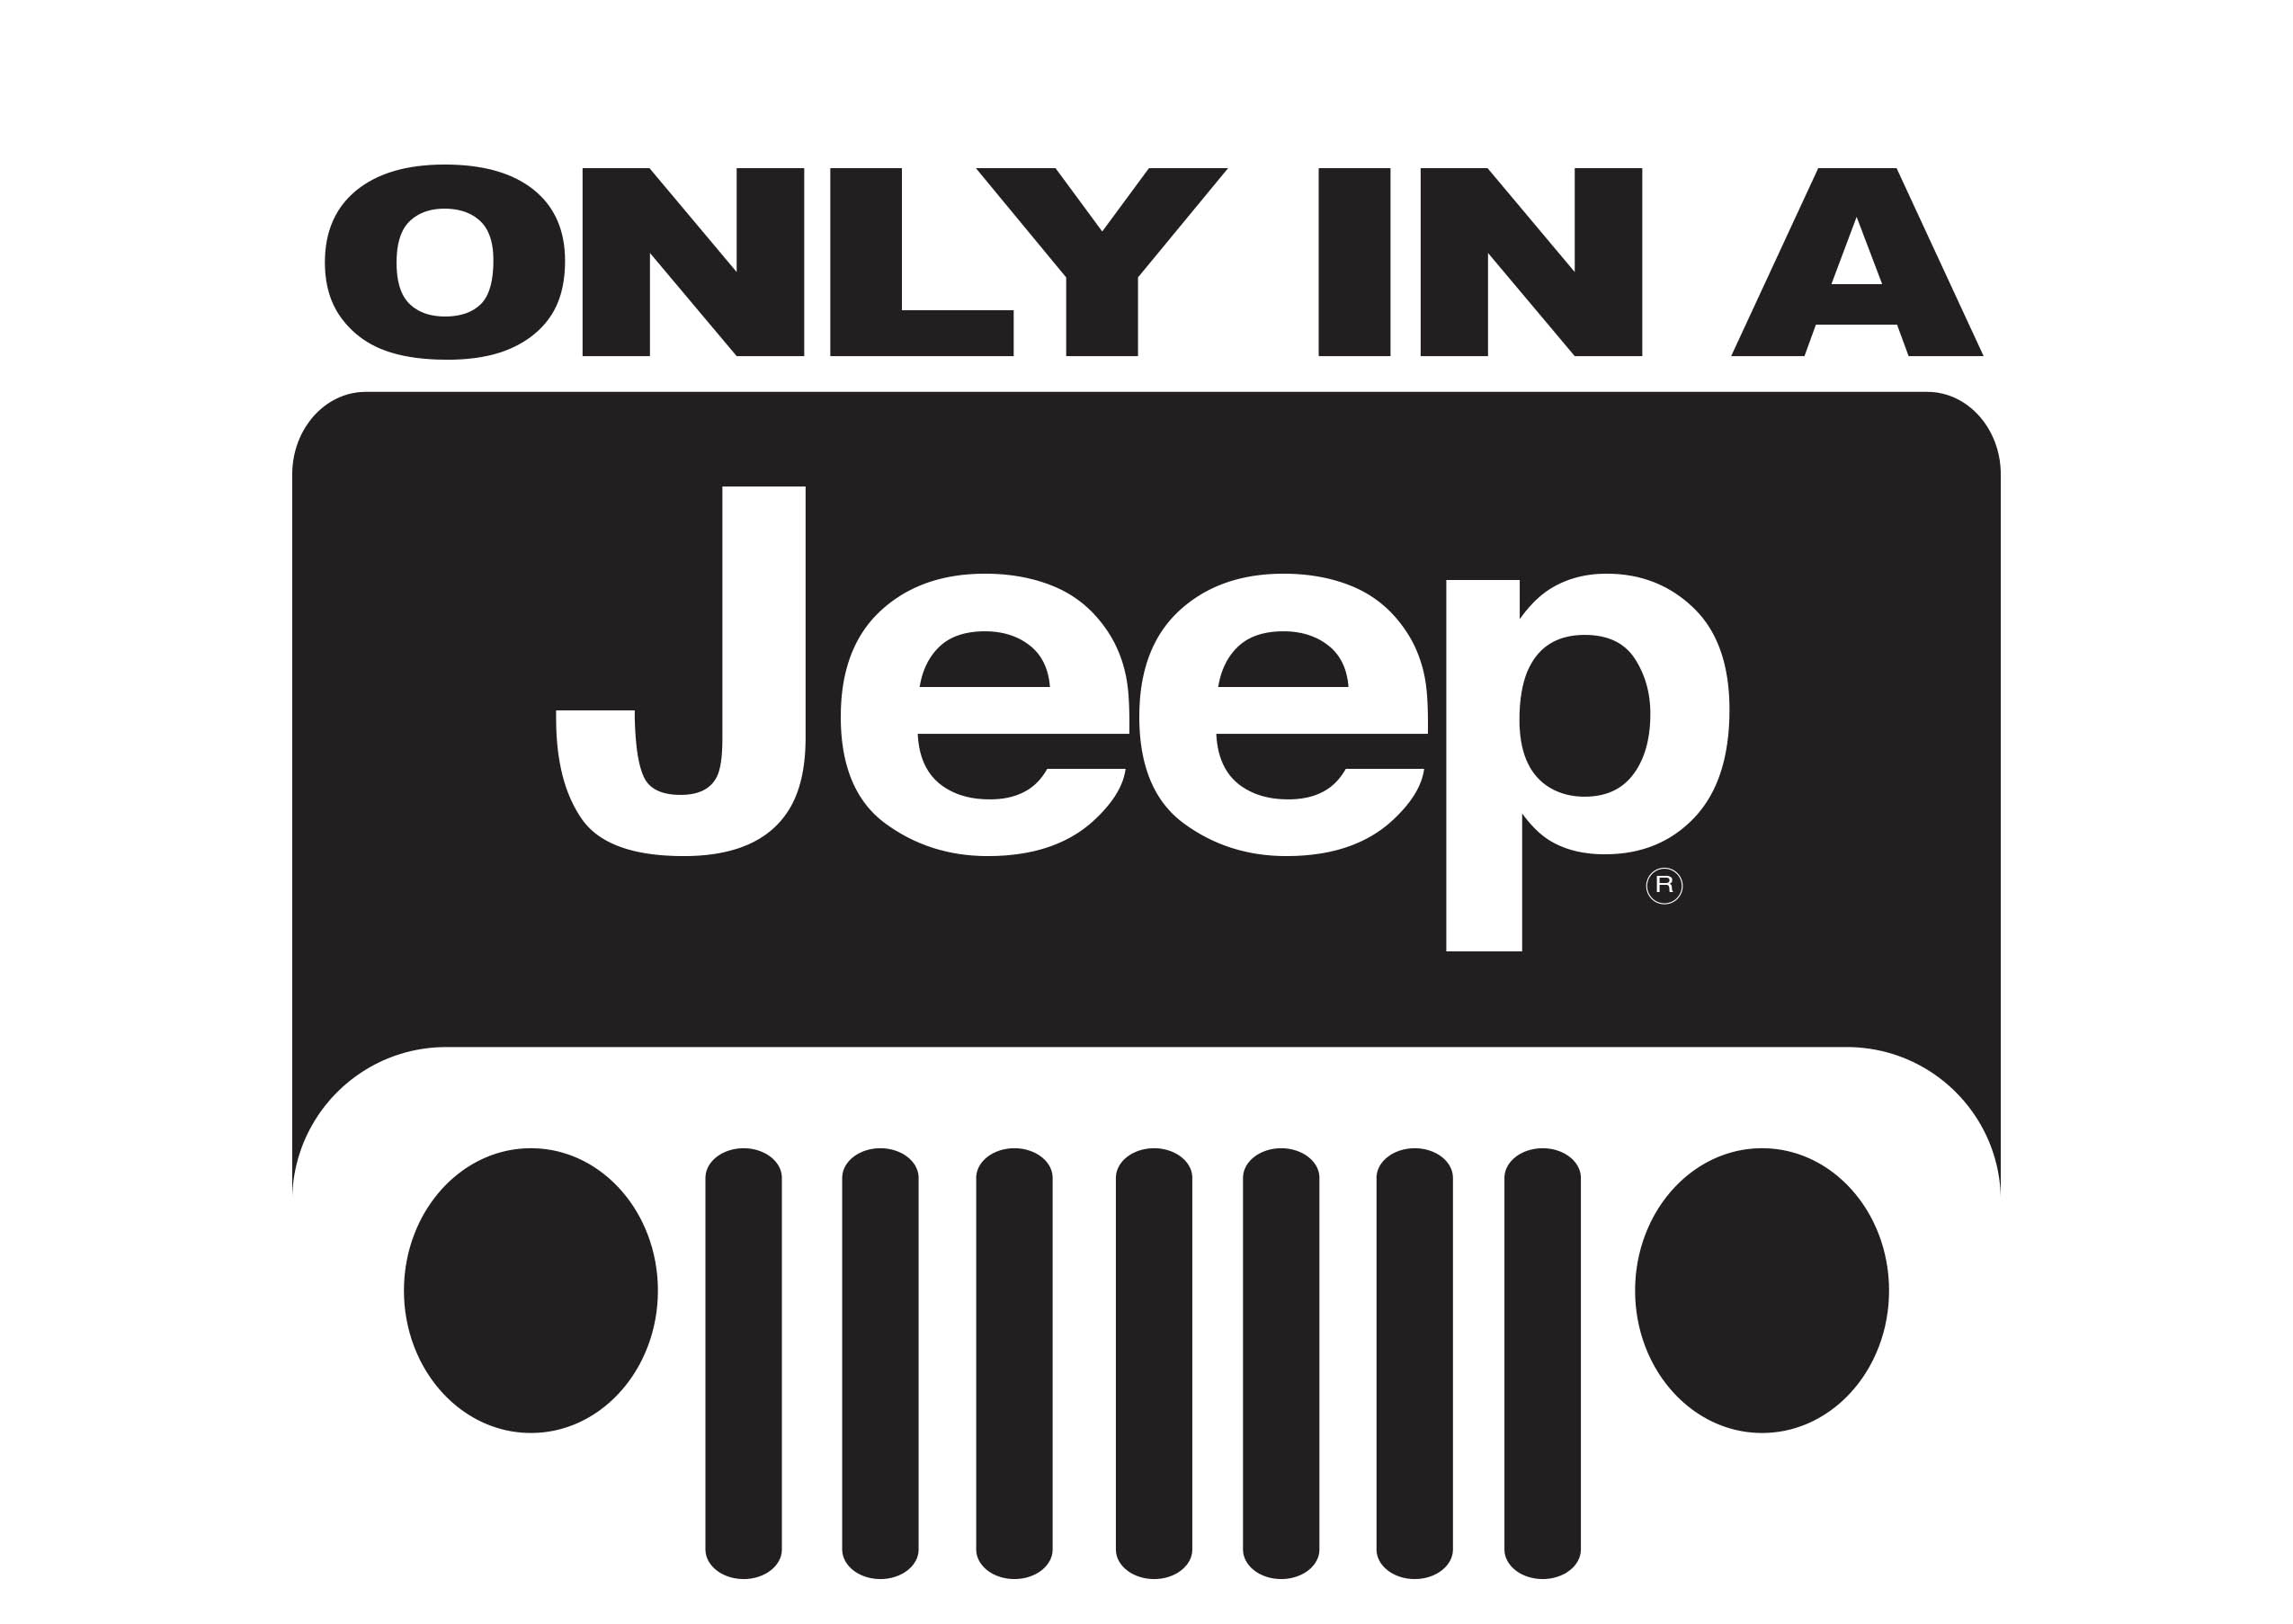 Jeep Vector Art At Free For Personal Use Wrangler Draw 2550x1806 9 Logo Images